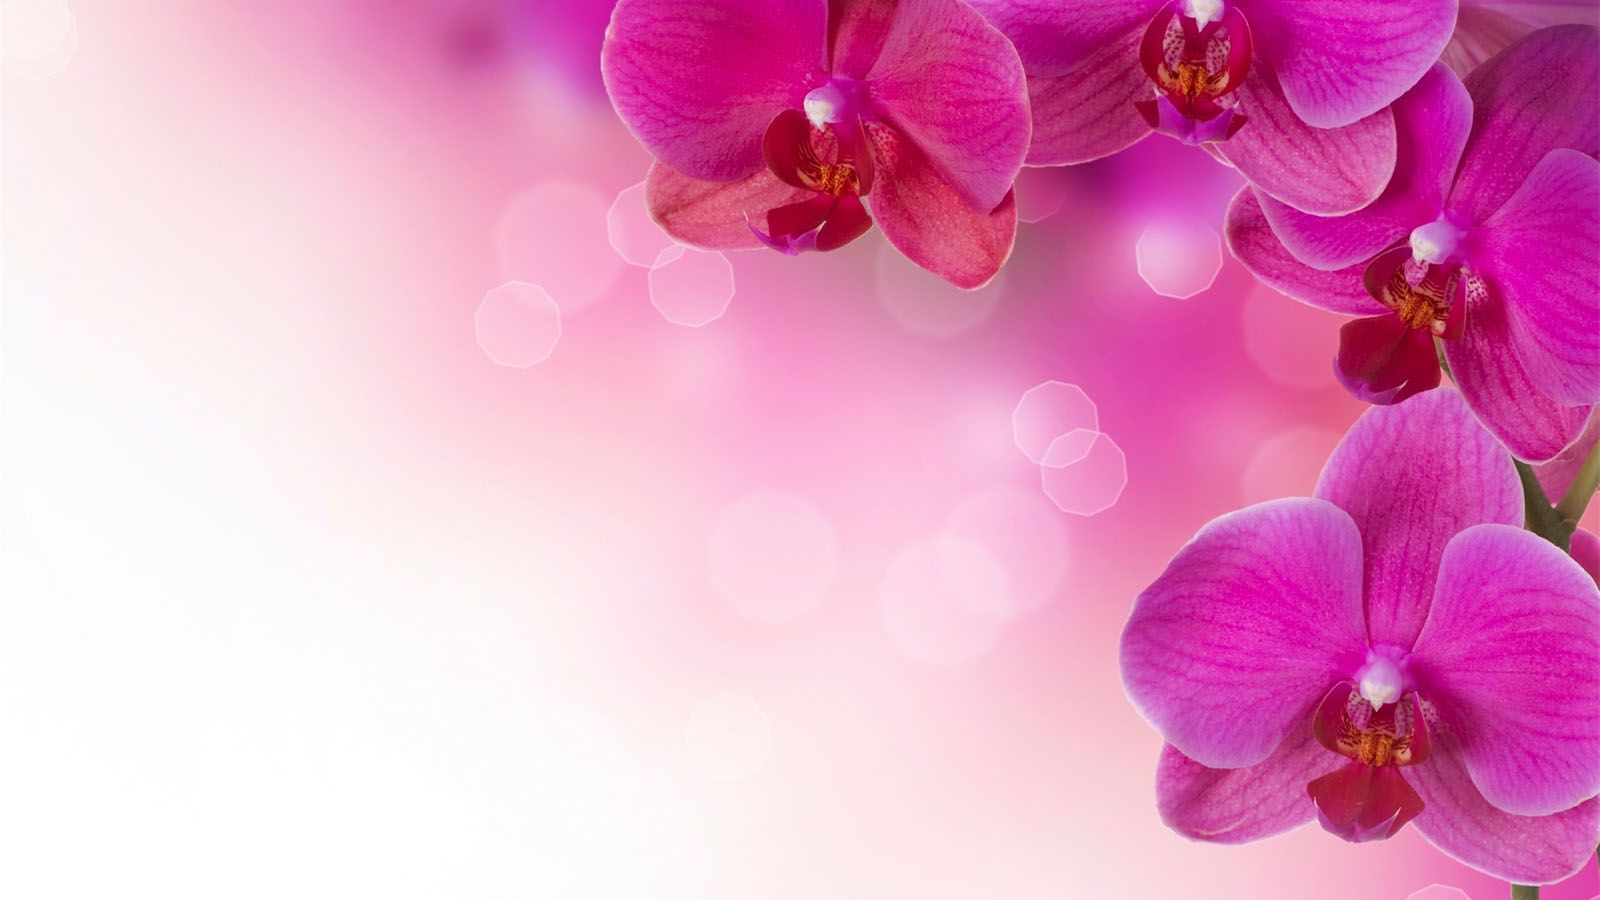 Flower Backgrounds Pink Flower Background Wallpaper